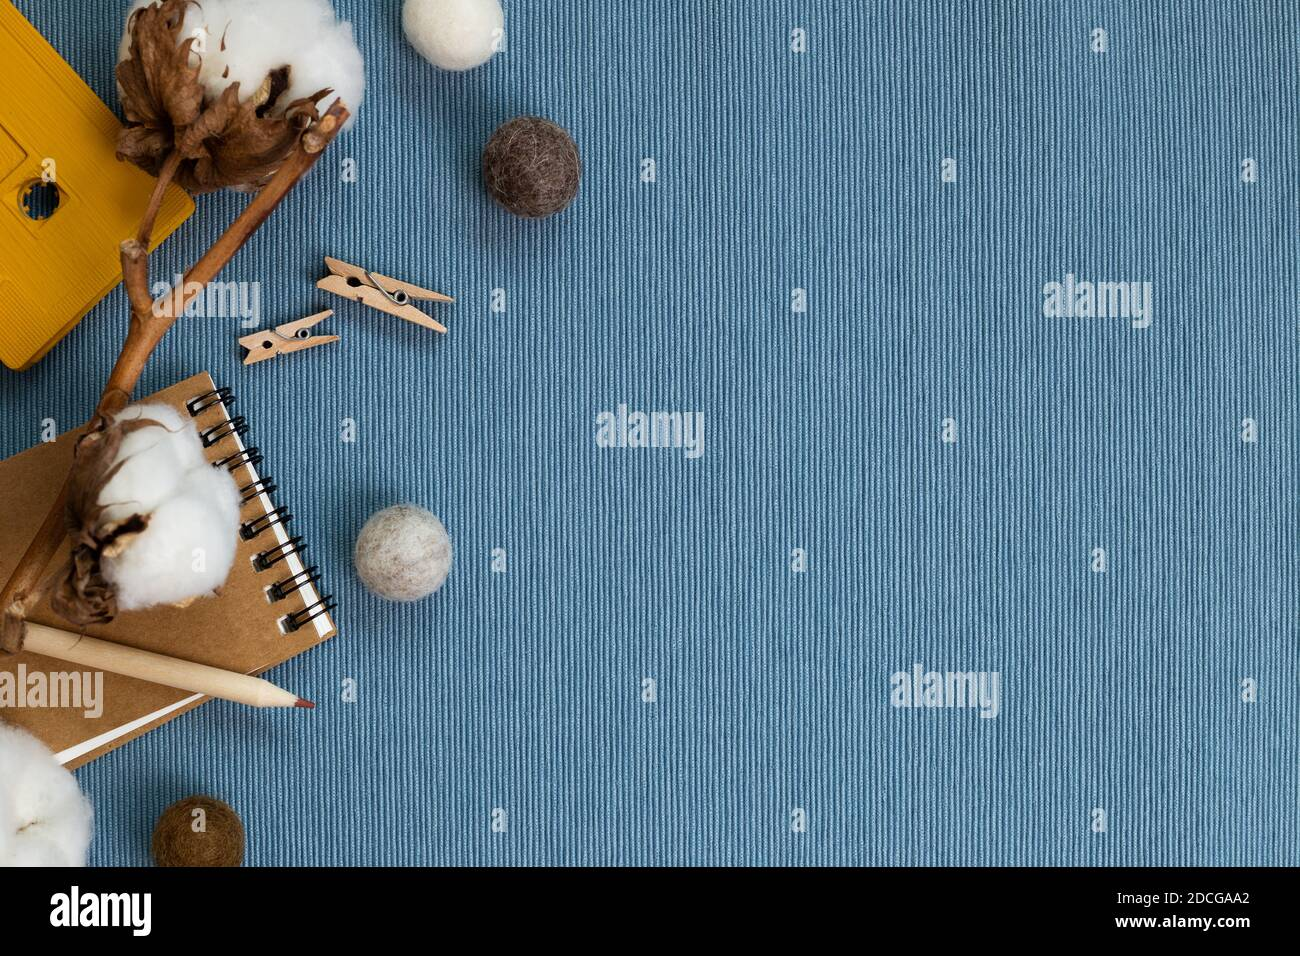 Winter concept. Notebook and pencil, cotton plant, cassette tape on blue fabric background. flat lay, top view, copy space. Work and study place Stock Photo